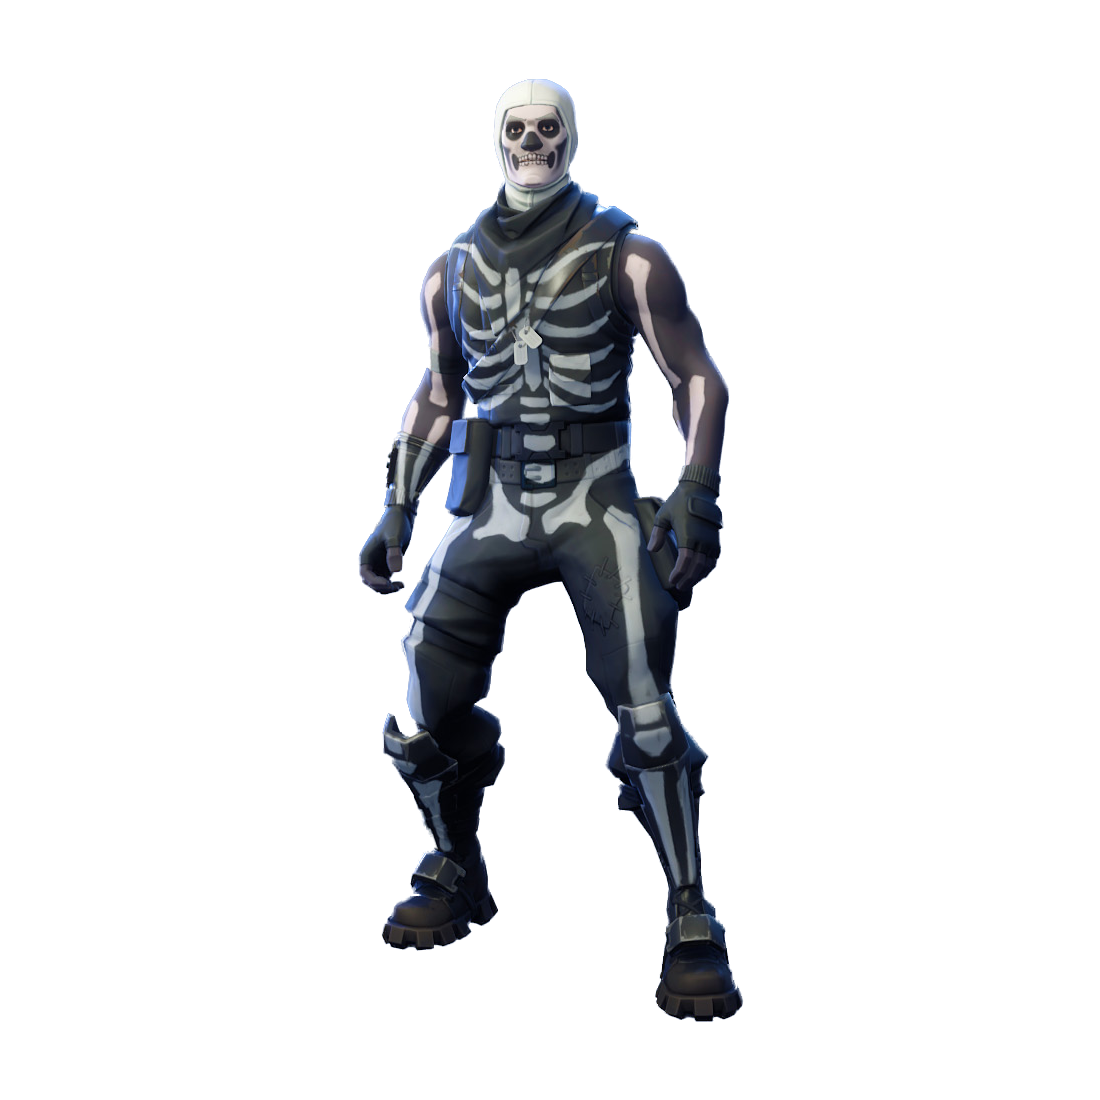 Fortnite Skull Trooper PNG Image